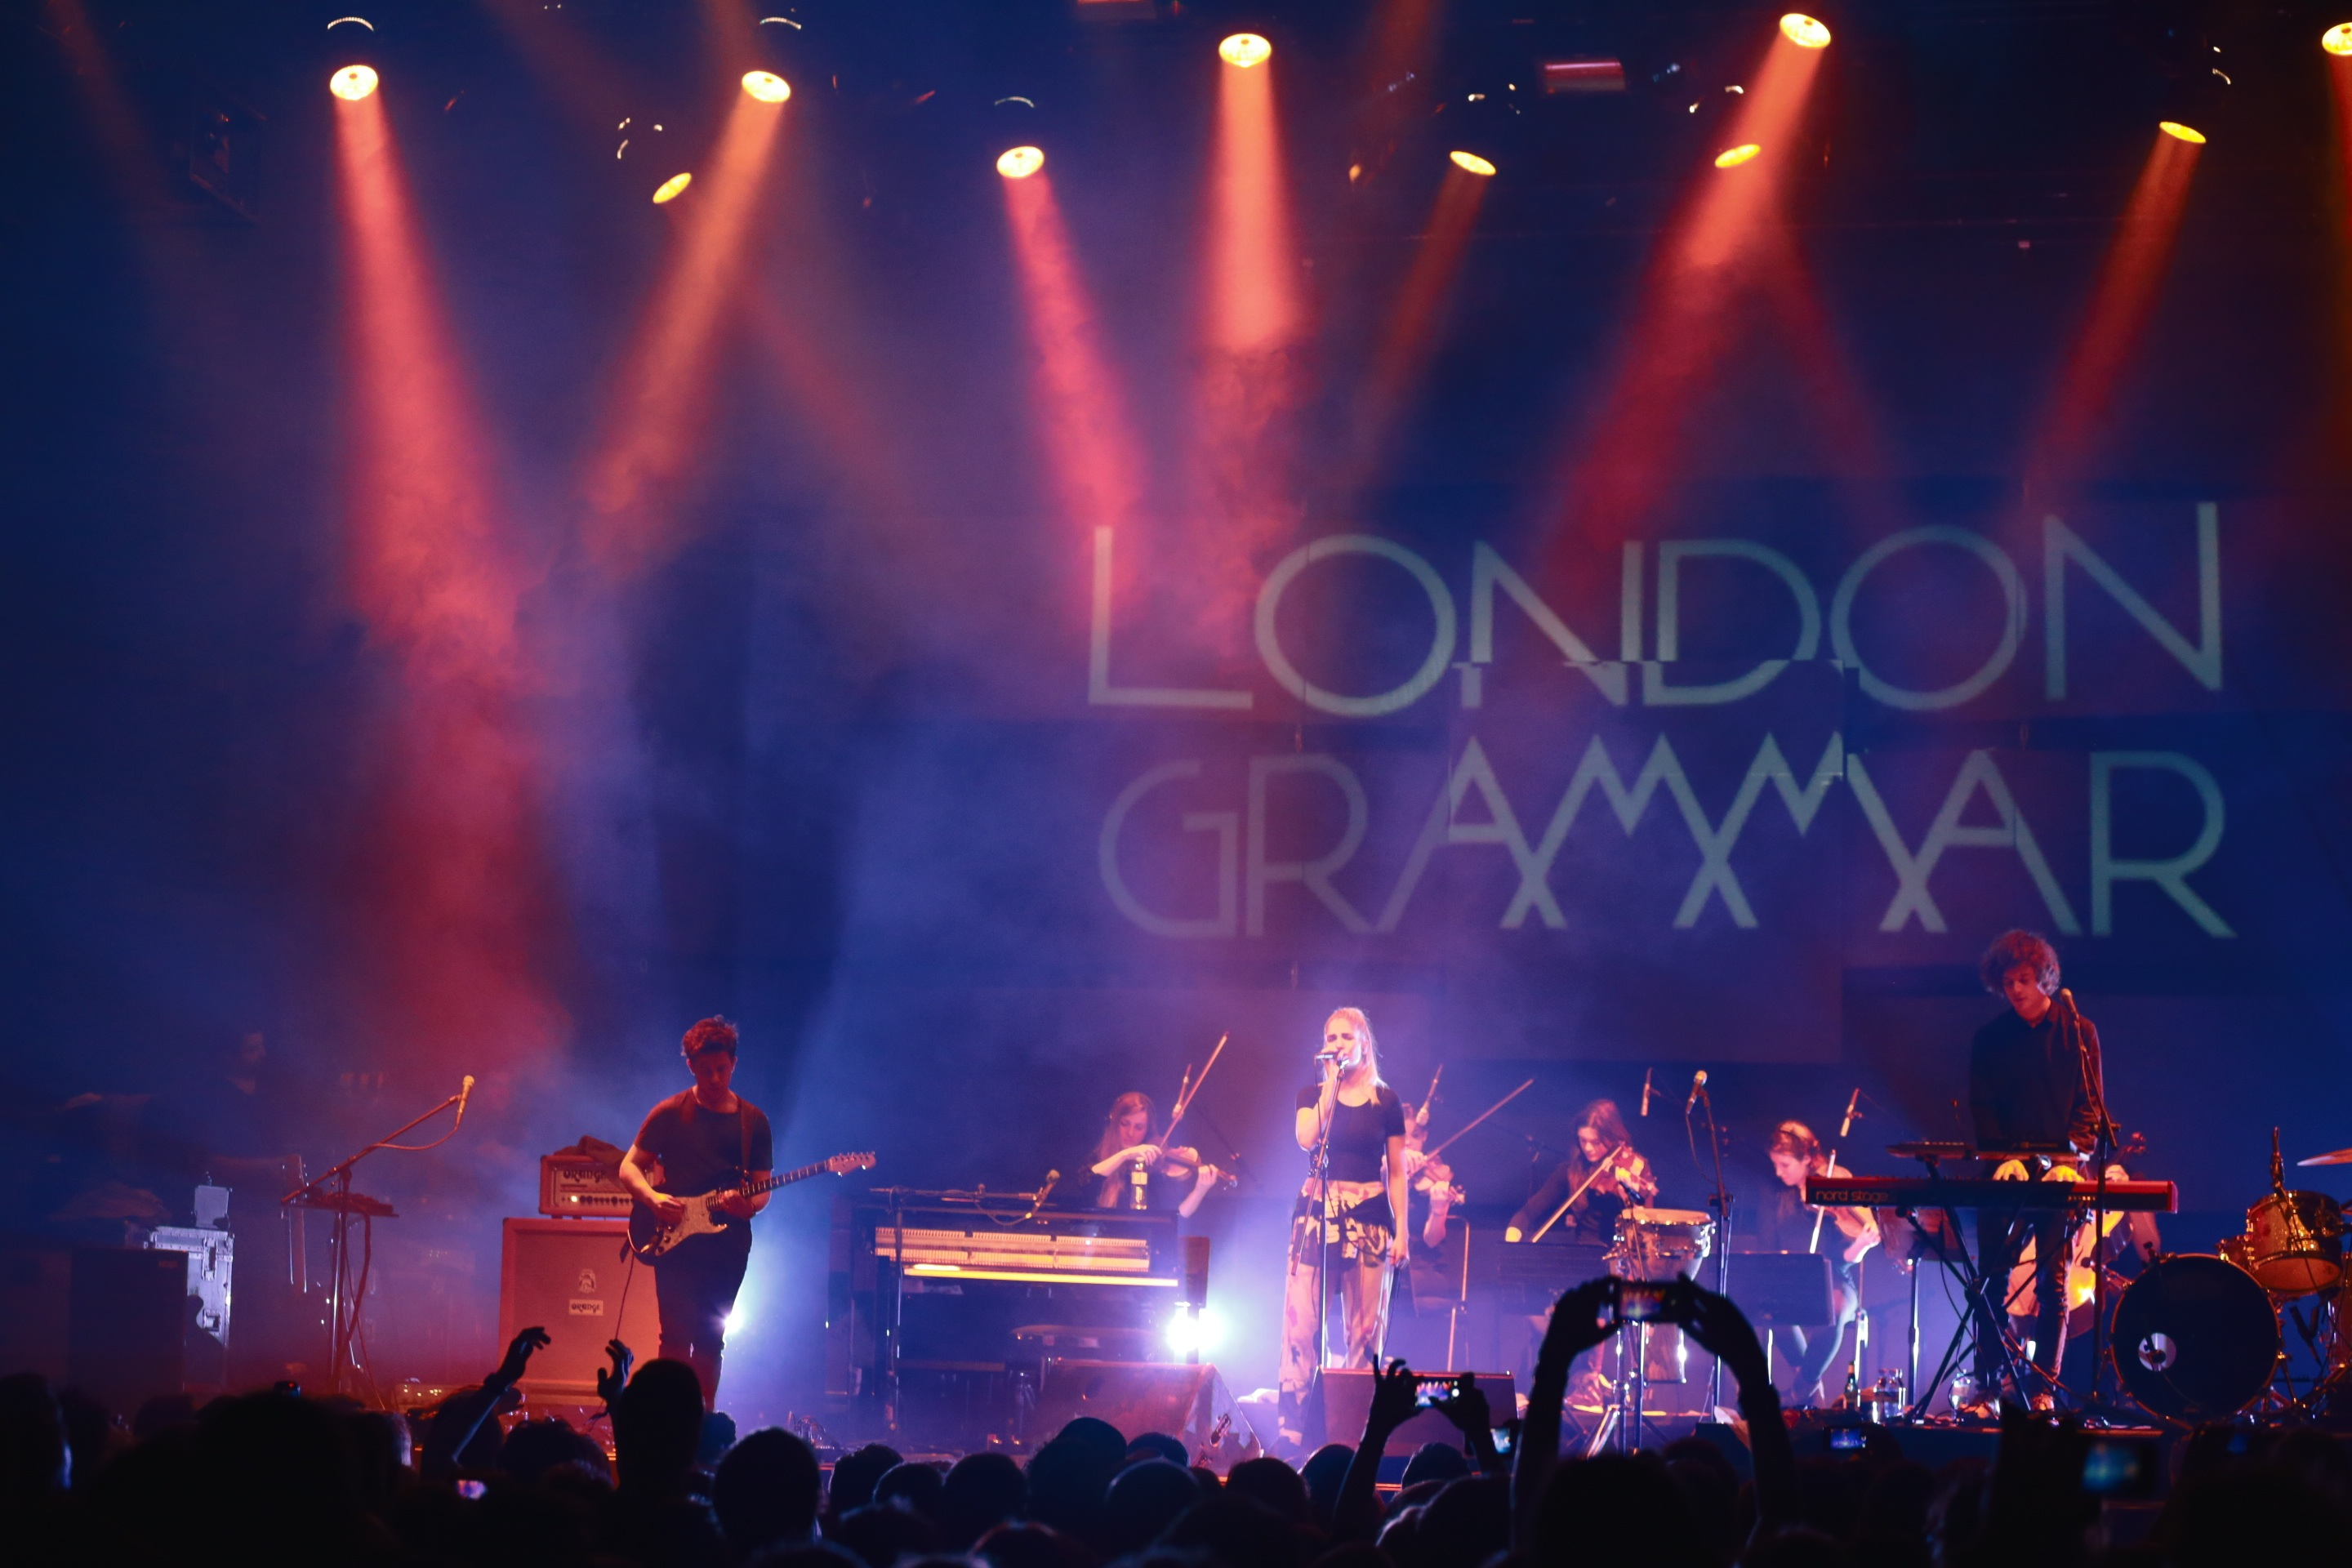 London Grammar on stage